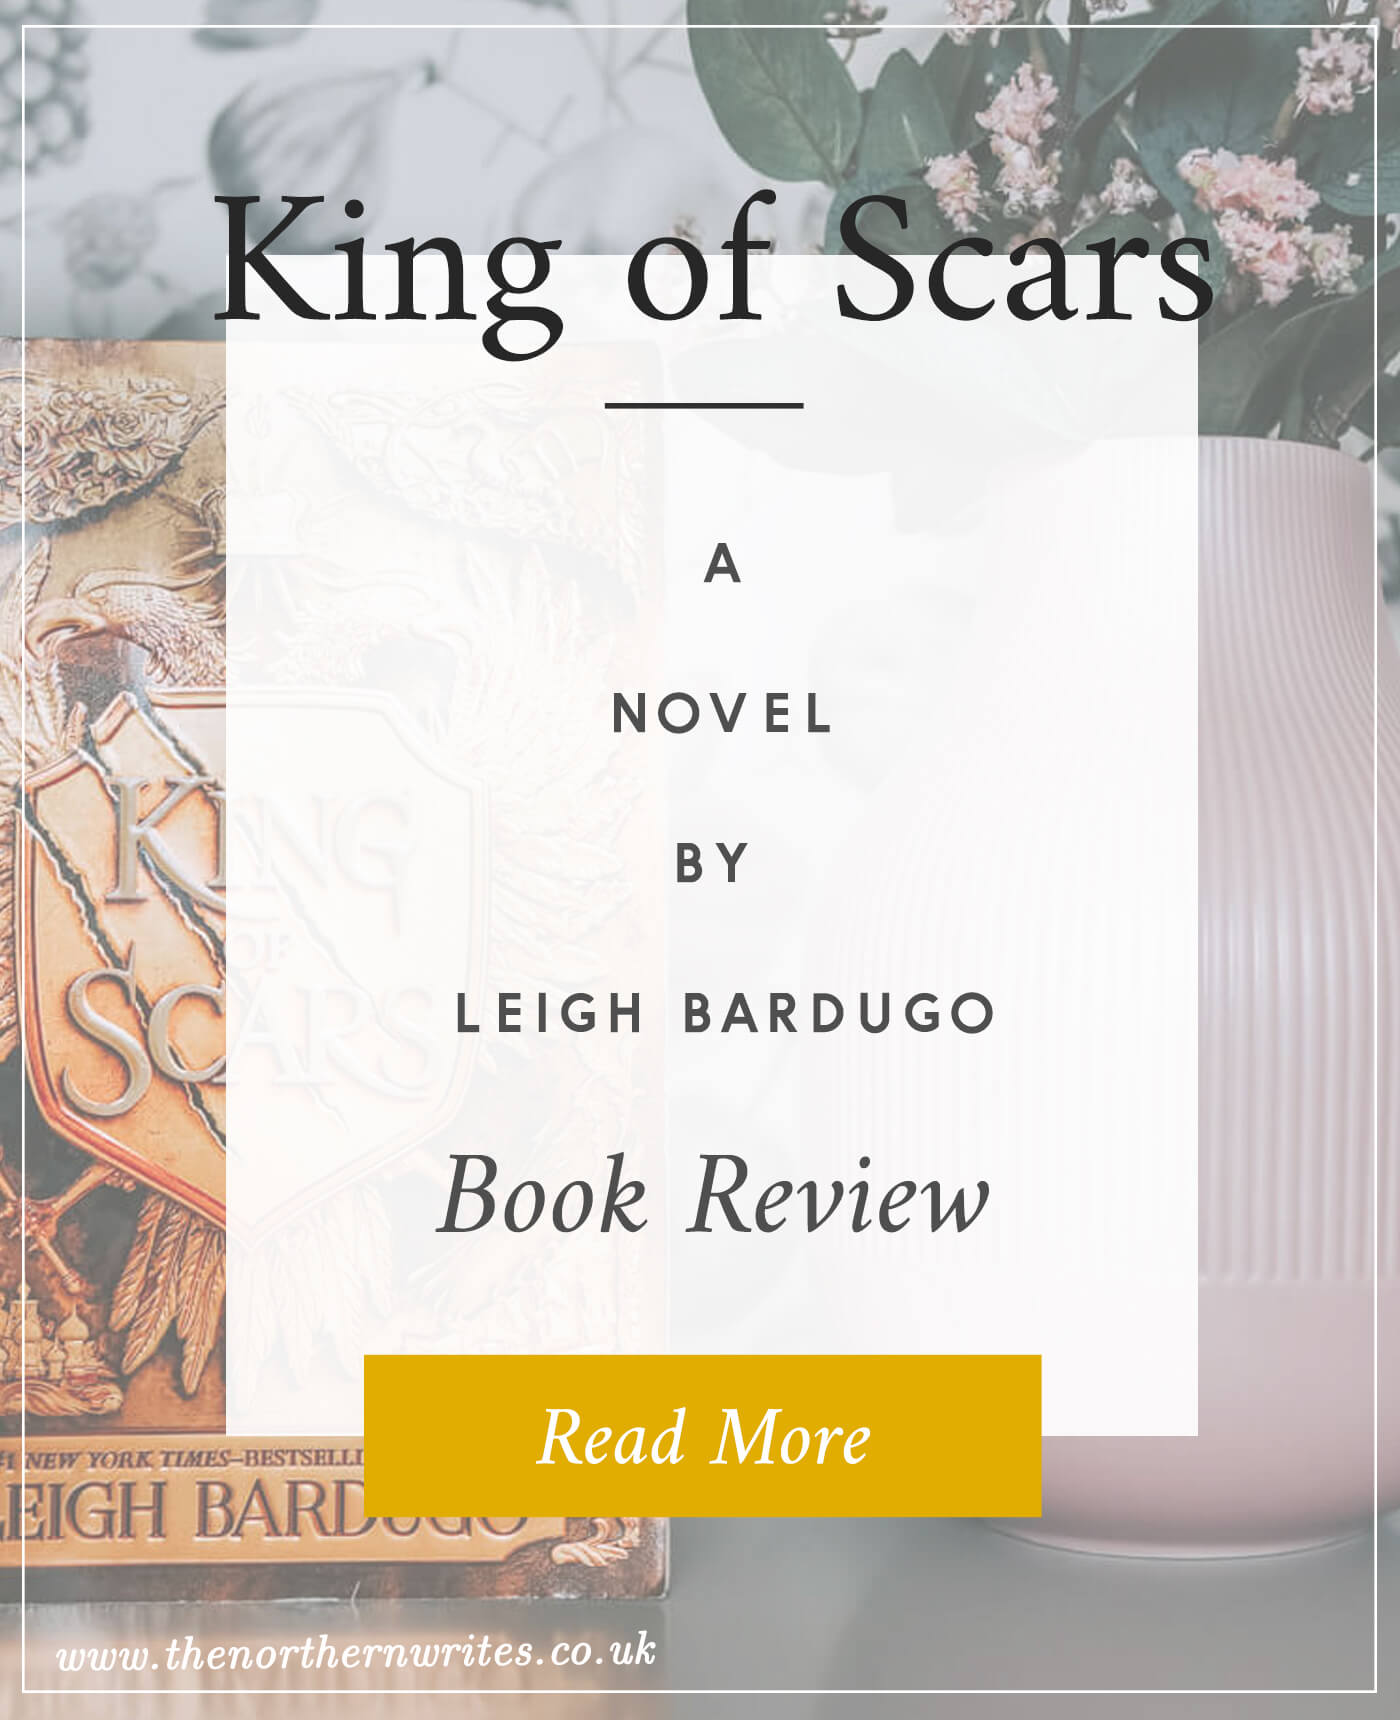 King of Scars by Leigh Bardugo book review